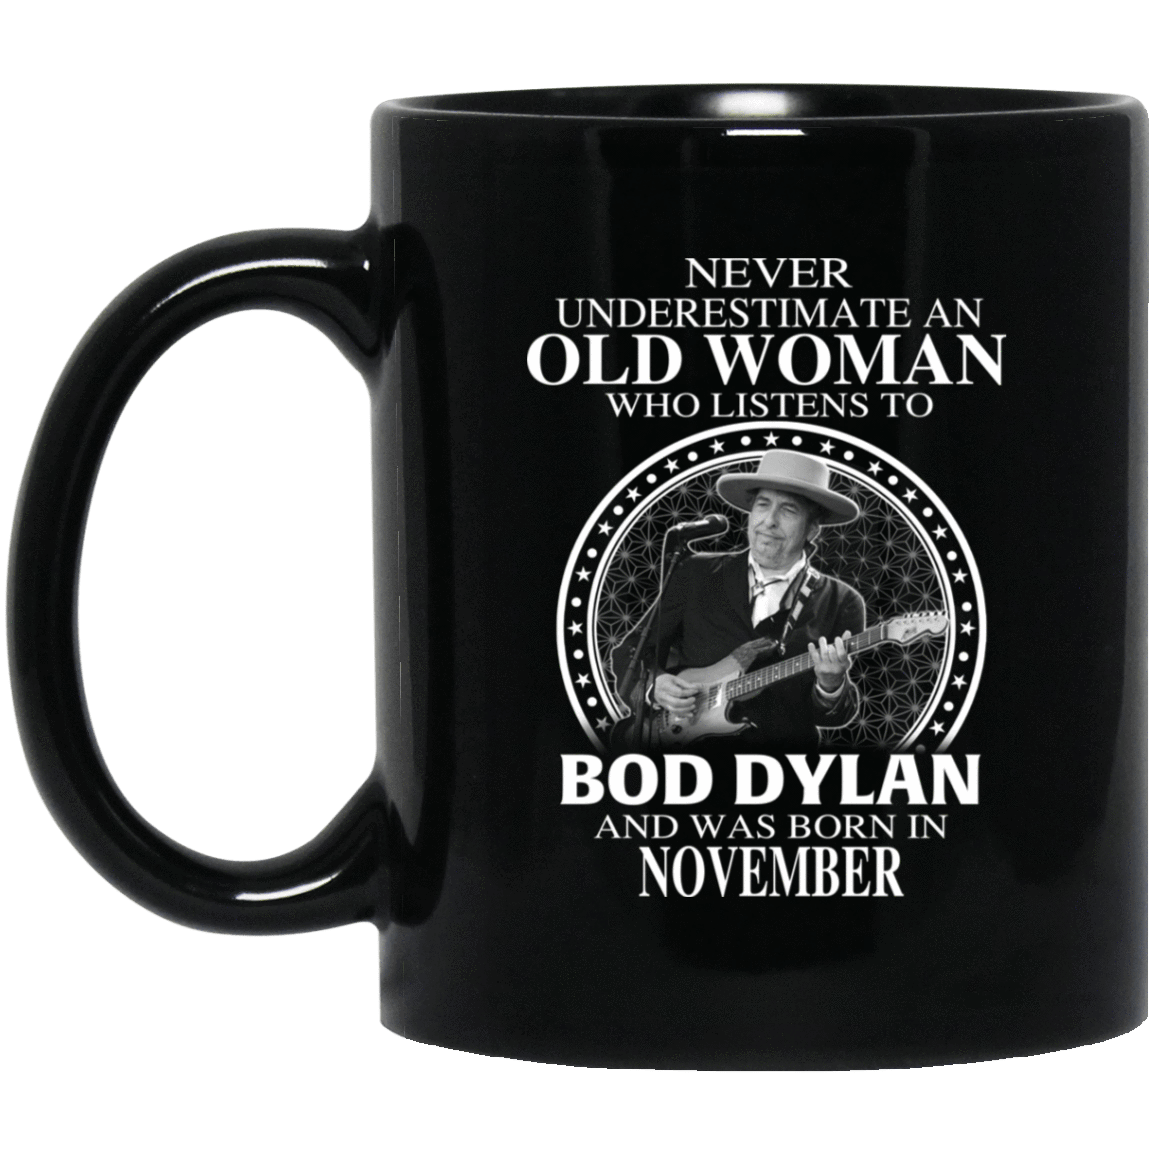 An Old Woman Who Listens To Bob Dylan And Was Born In November Mug 1065-10181-76154132-49307 - Tee Ript